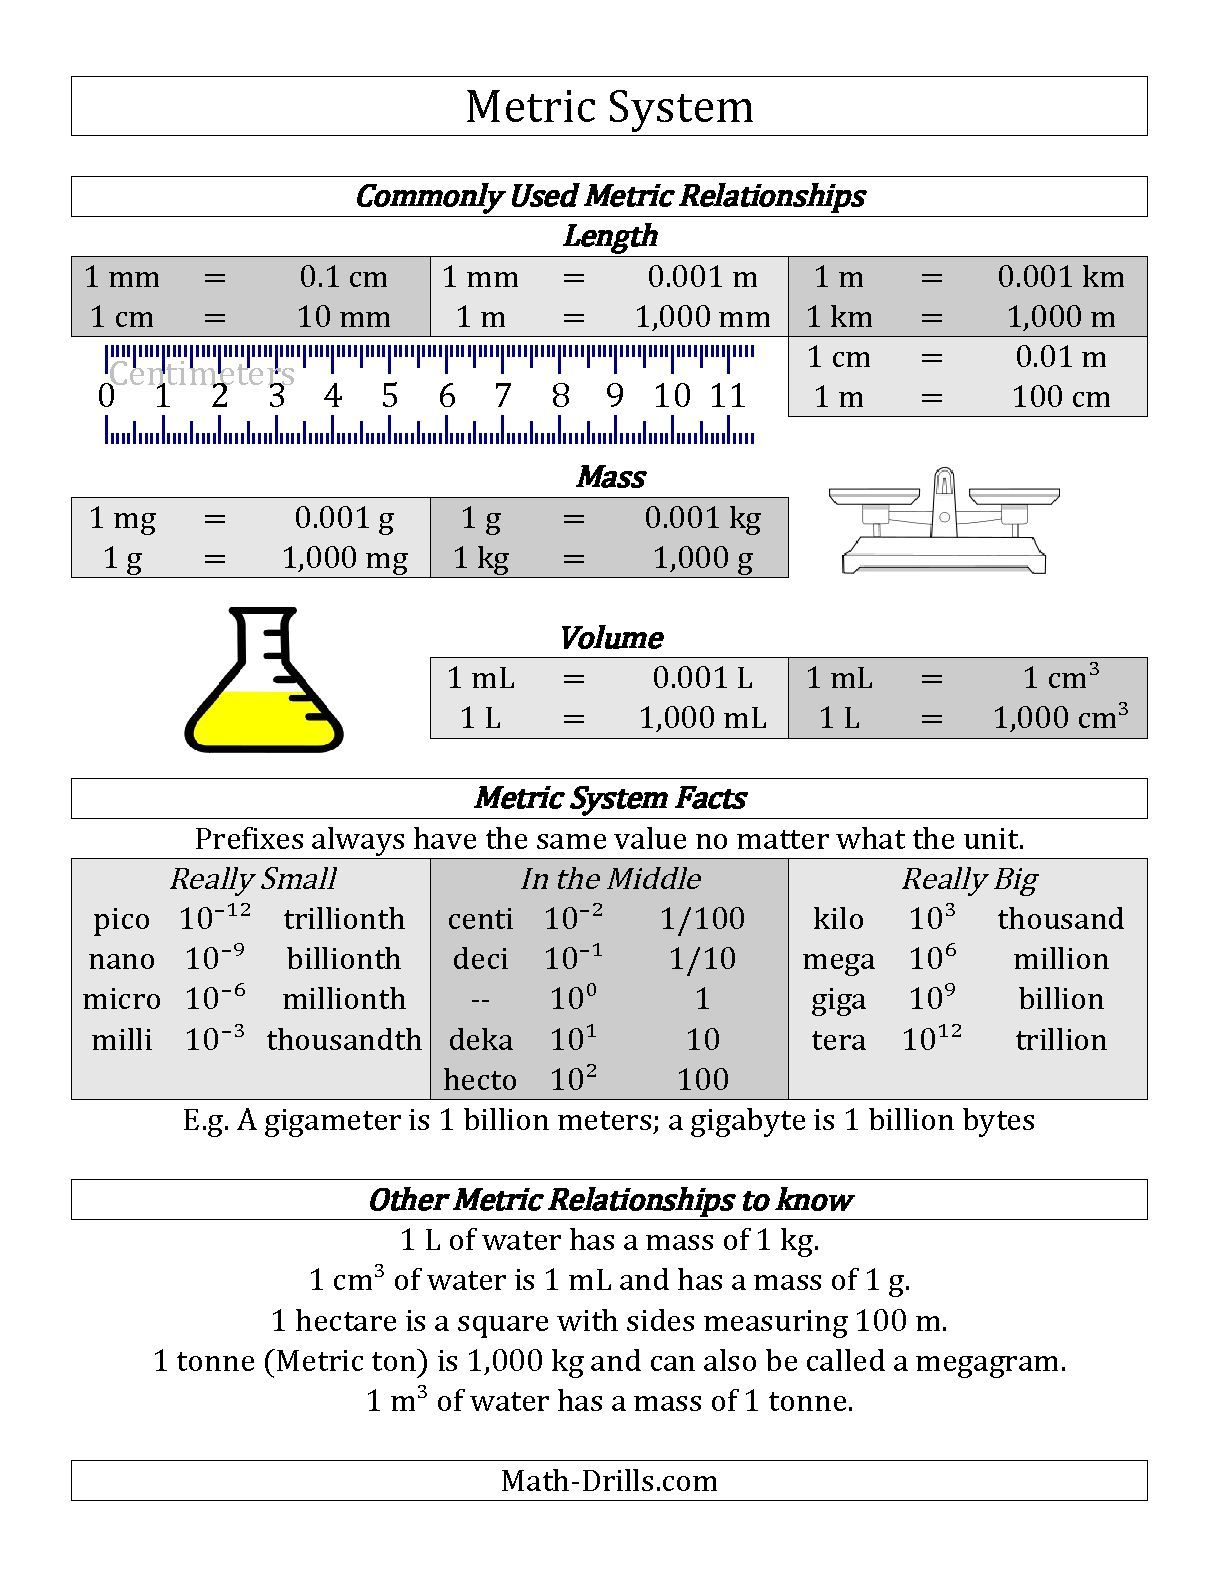 worksheet Converting Measurement Worksheets free metric system conversion guide homeschool giveaways the a measurement worksheet